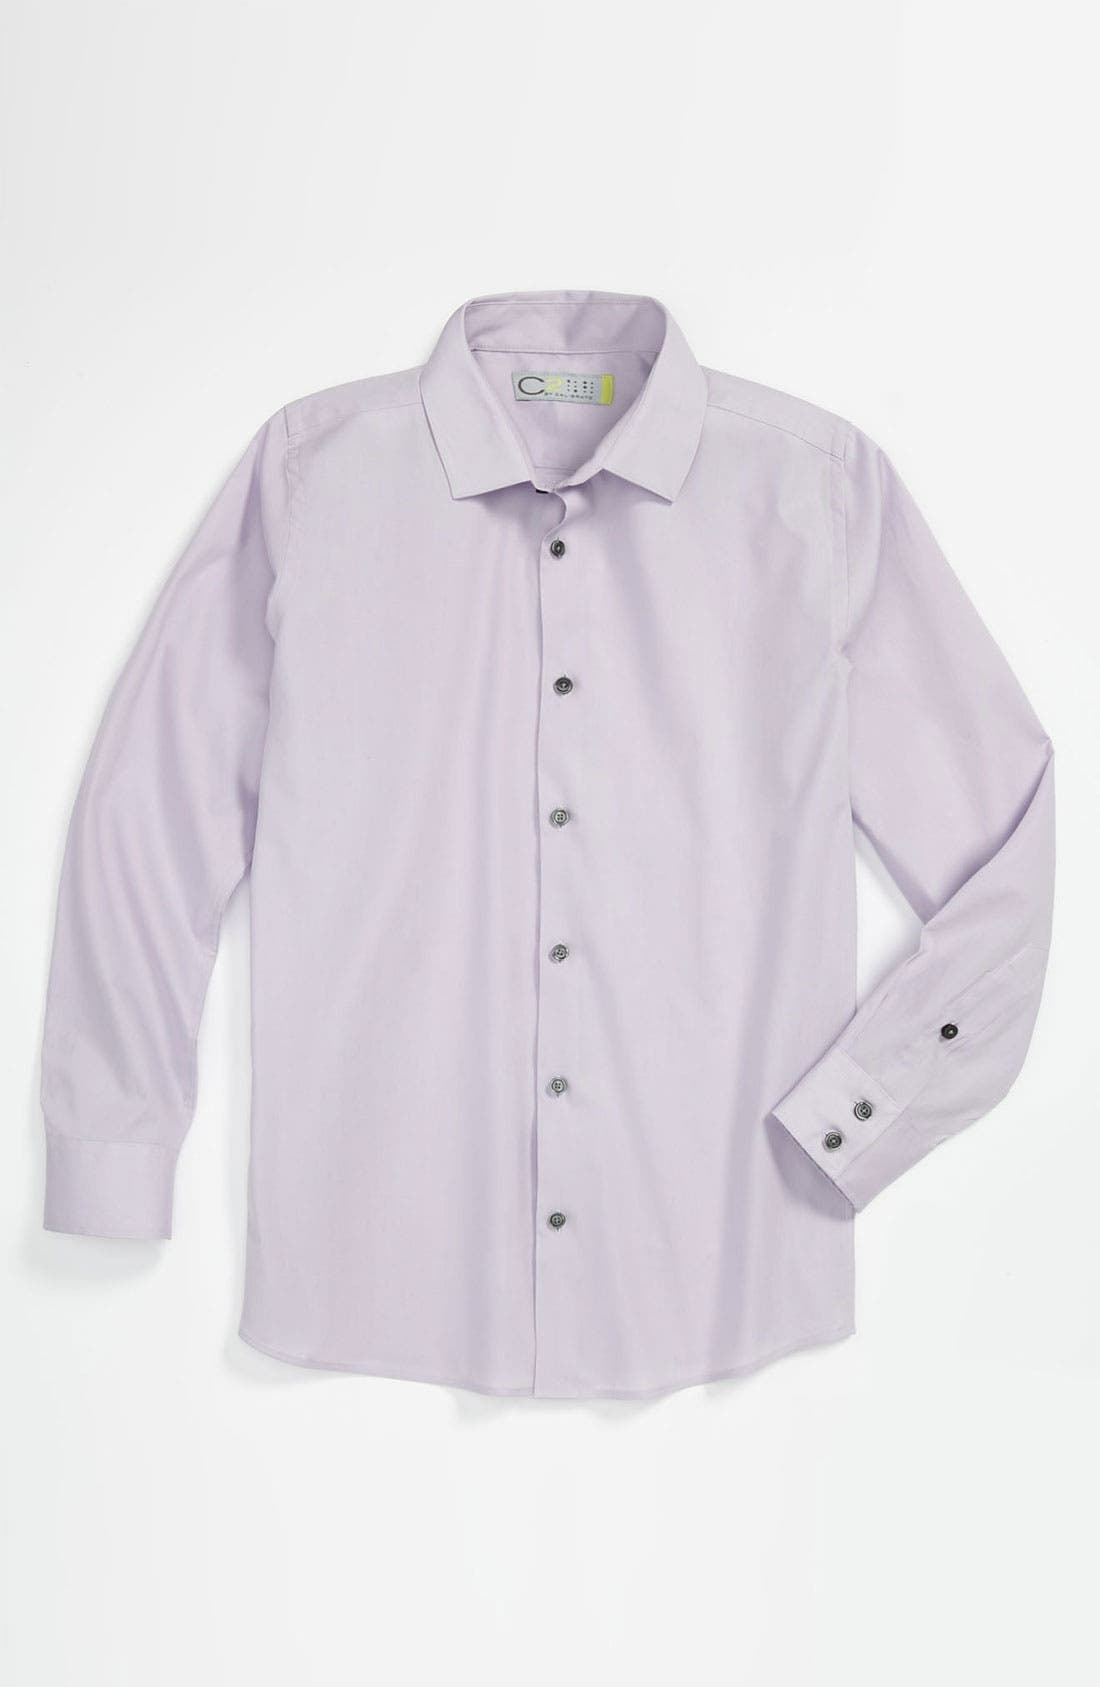 Alternate Image 1 Selected - C2 by Calibrate 'Carter' Dress Shirt (Little Boys)